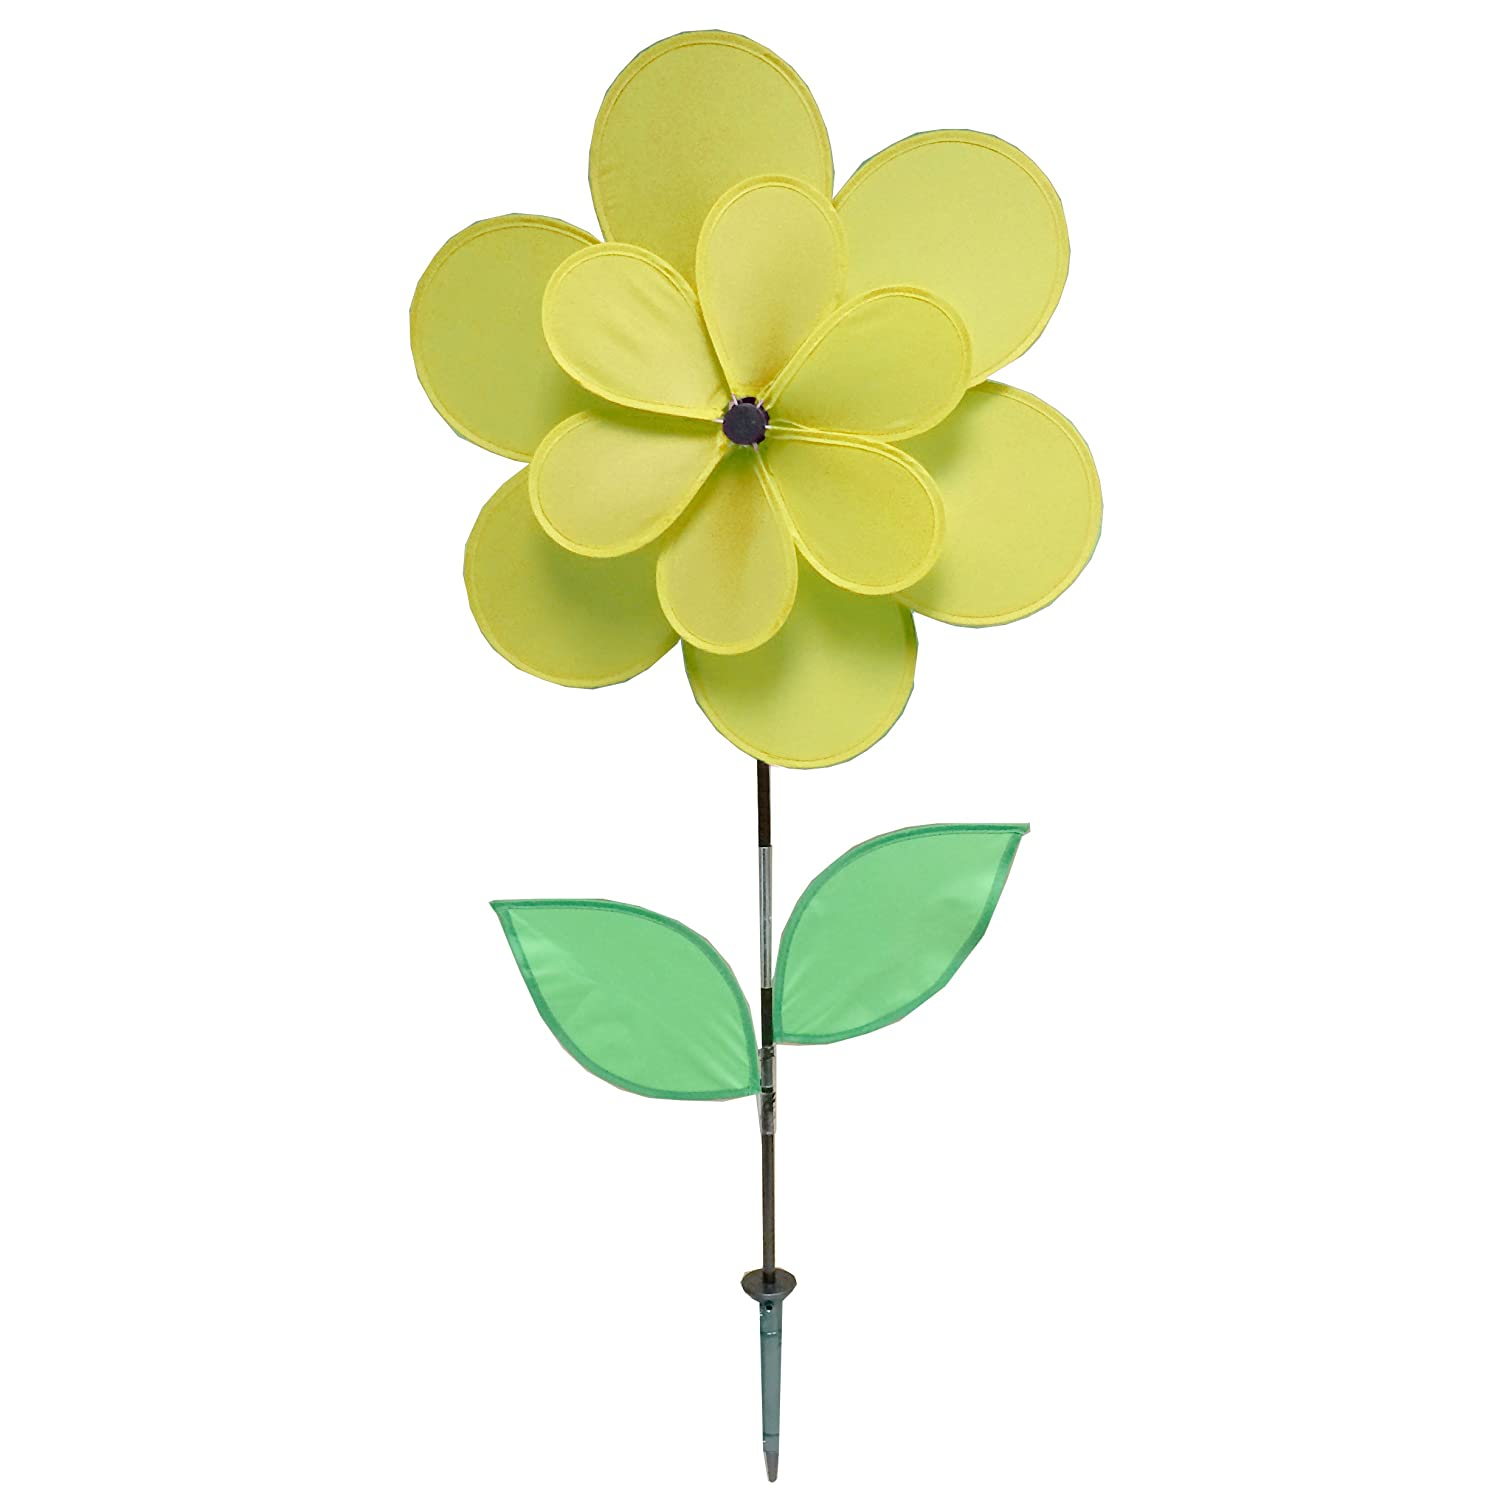 Gardener's Select A005A Double Petal Pin Wheel, Yellow, 18 by 18